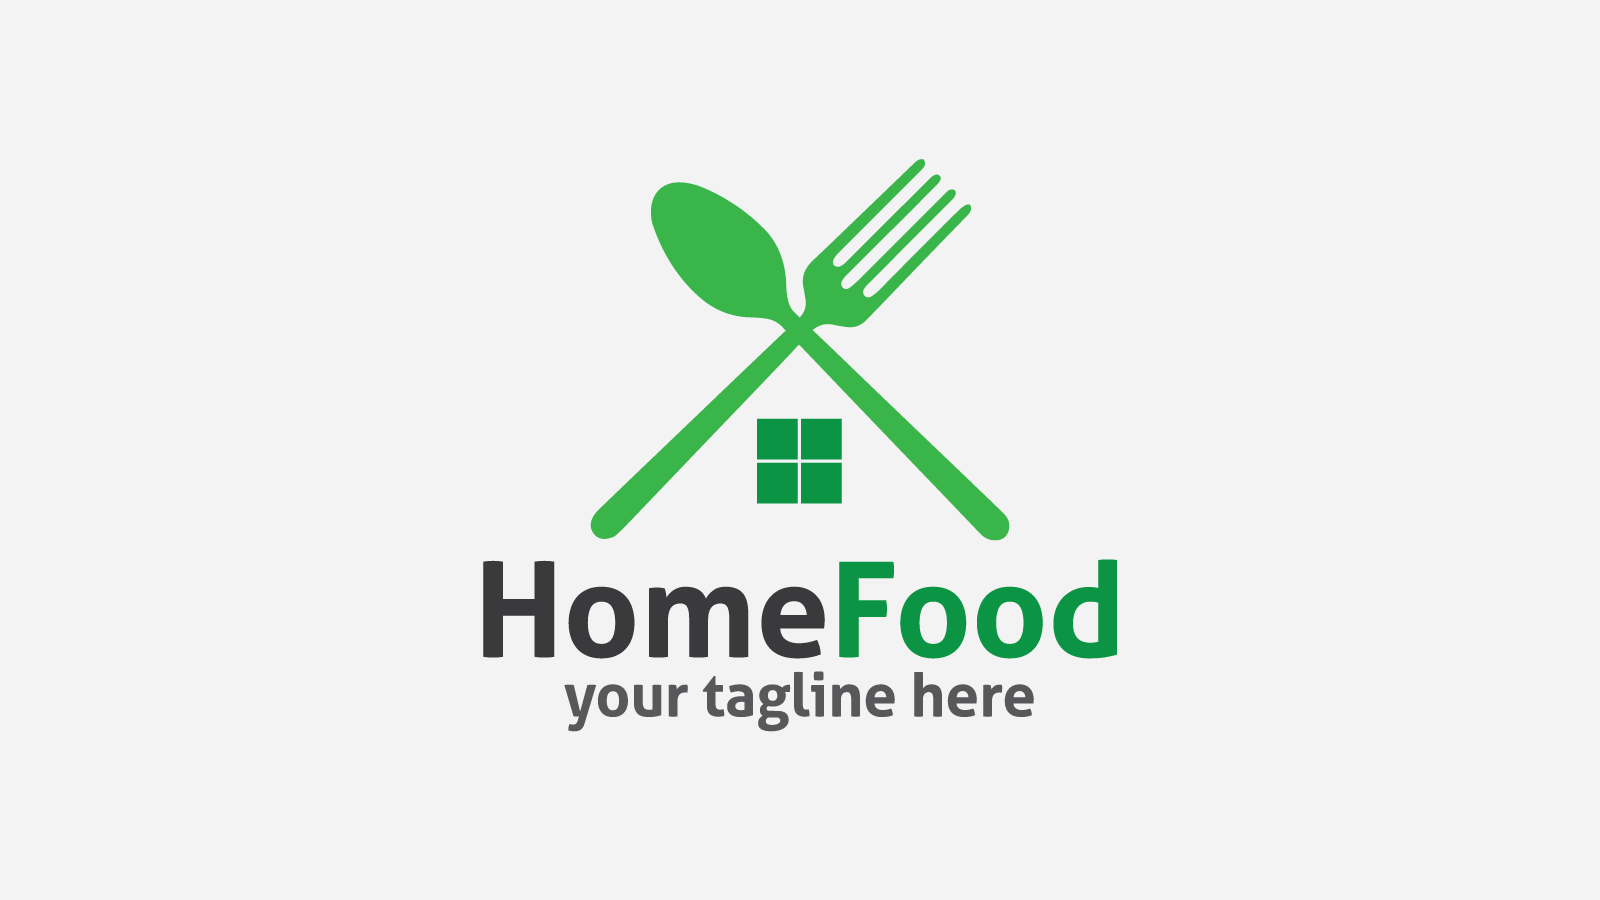 Homefood free logo design zfreegraphic free vector logo downloads homefood free business logo design template restaurant wajeb